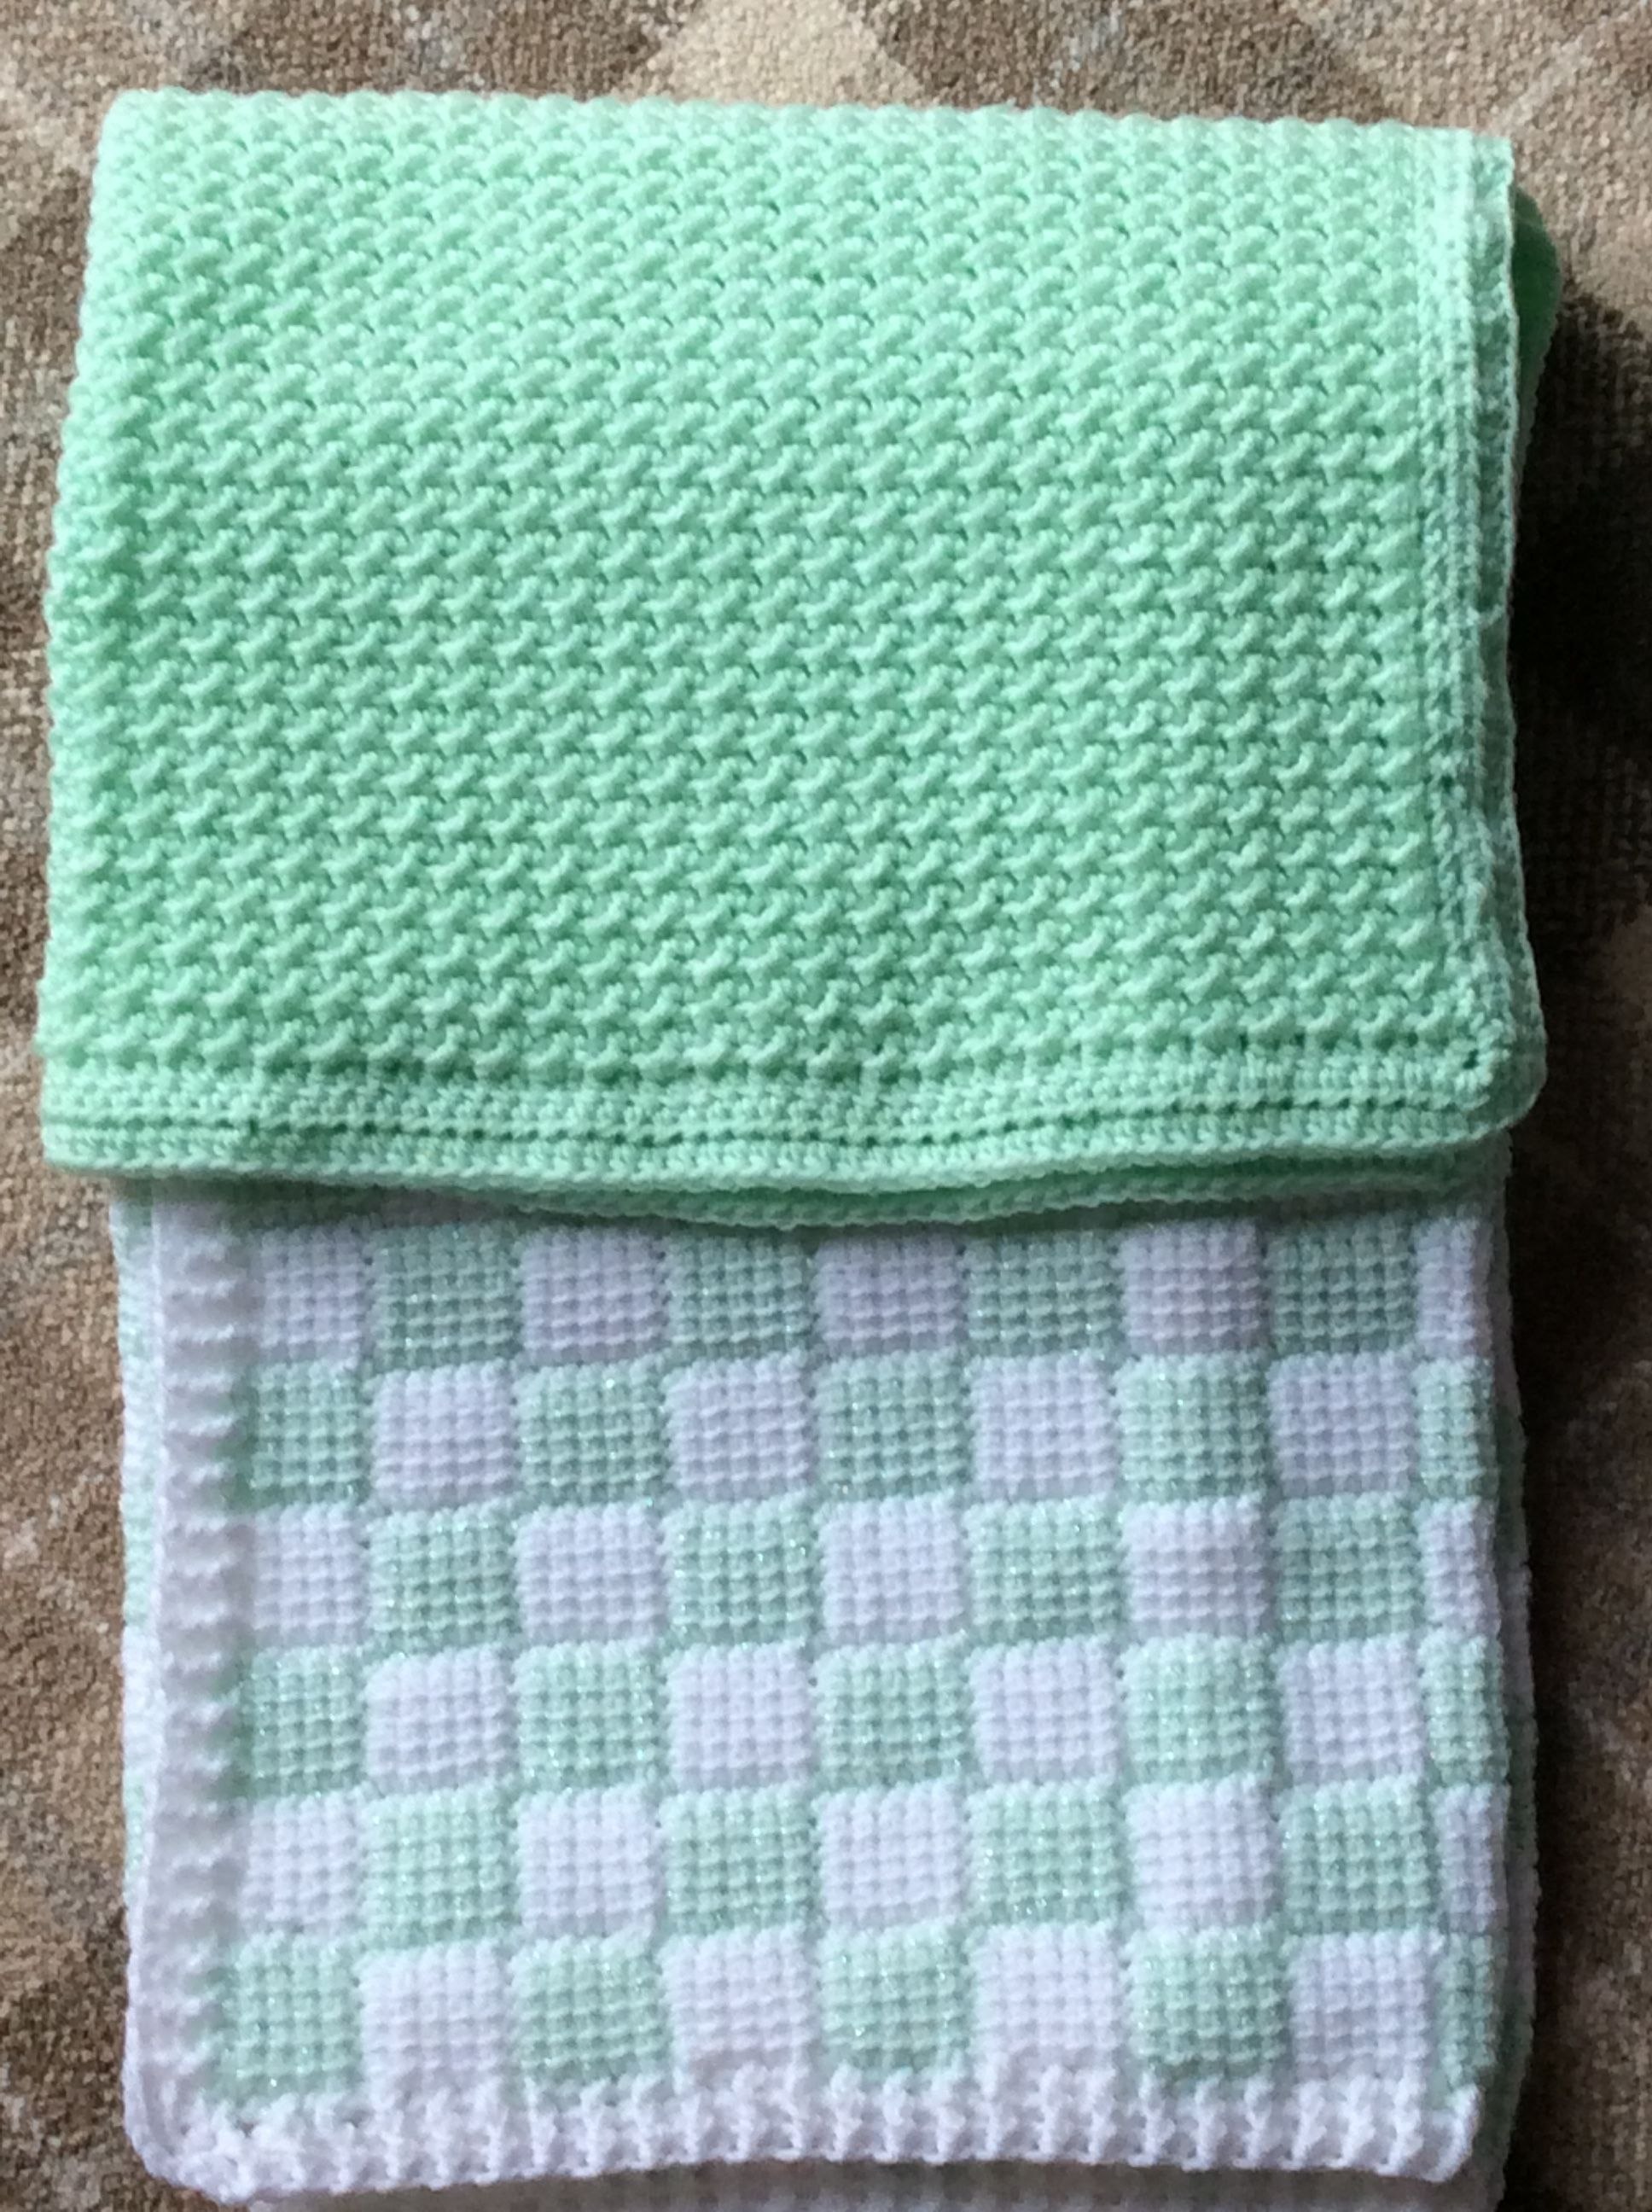 Blue and white - corner to corner entrelac Green crochet moss stitch ...